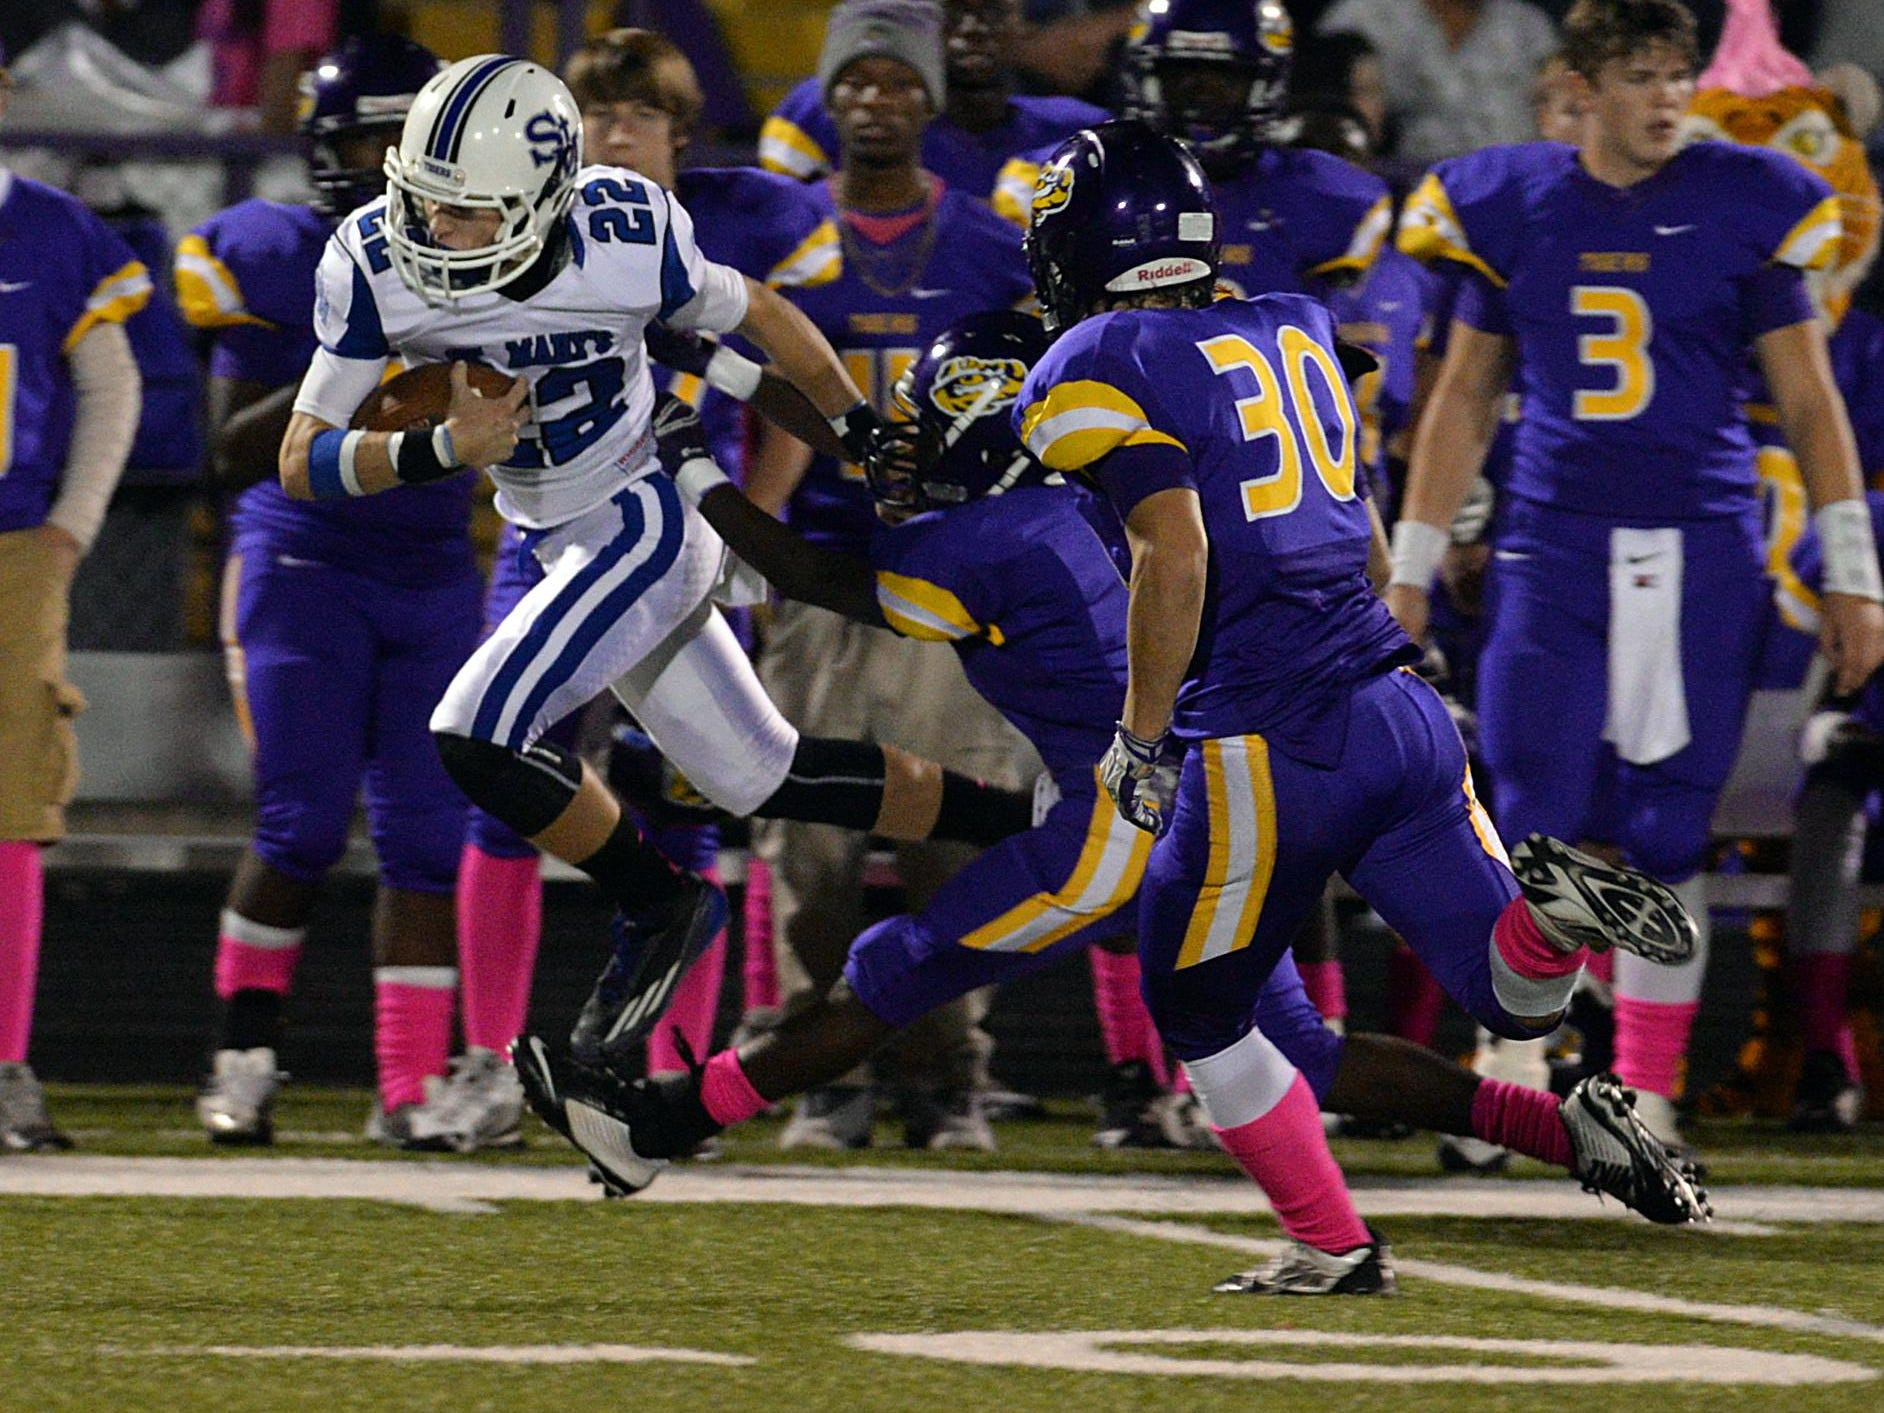 St. Mary's receiver Ryan Cunningham and the Tigers play for a state championship on Friday.